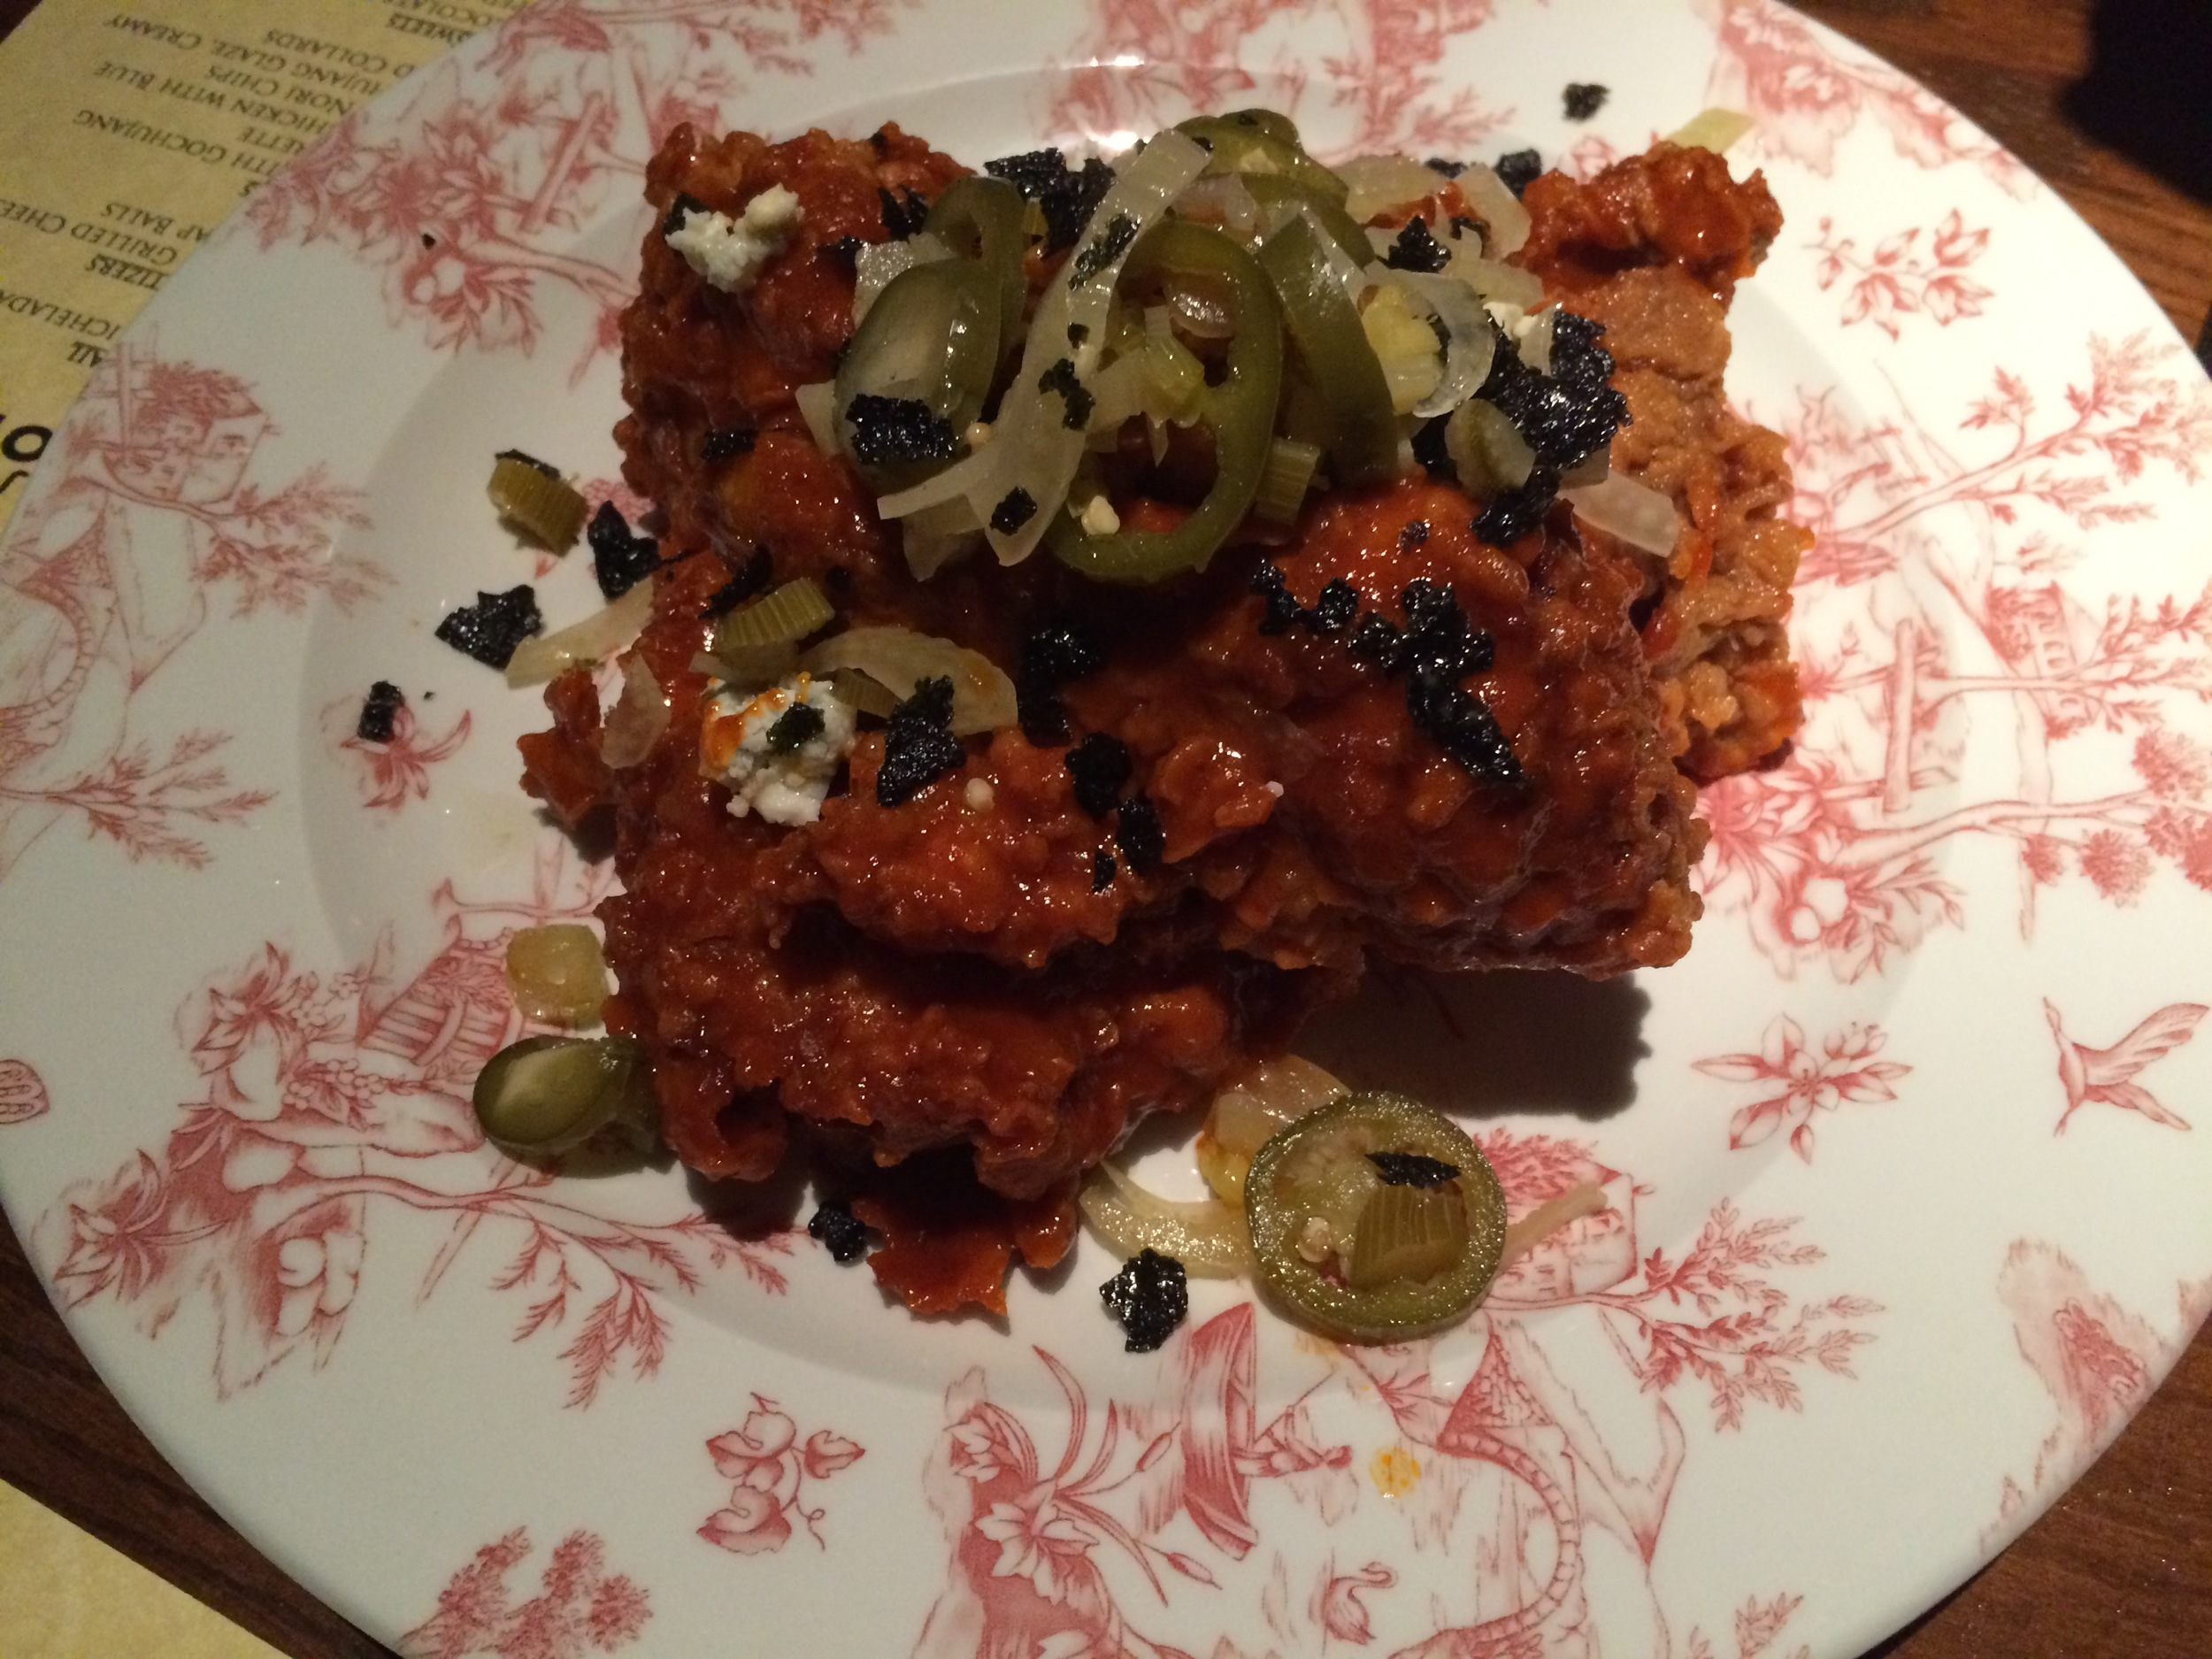 Gochujang fried chicken - To die for!